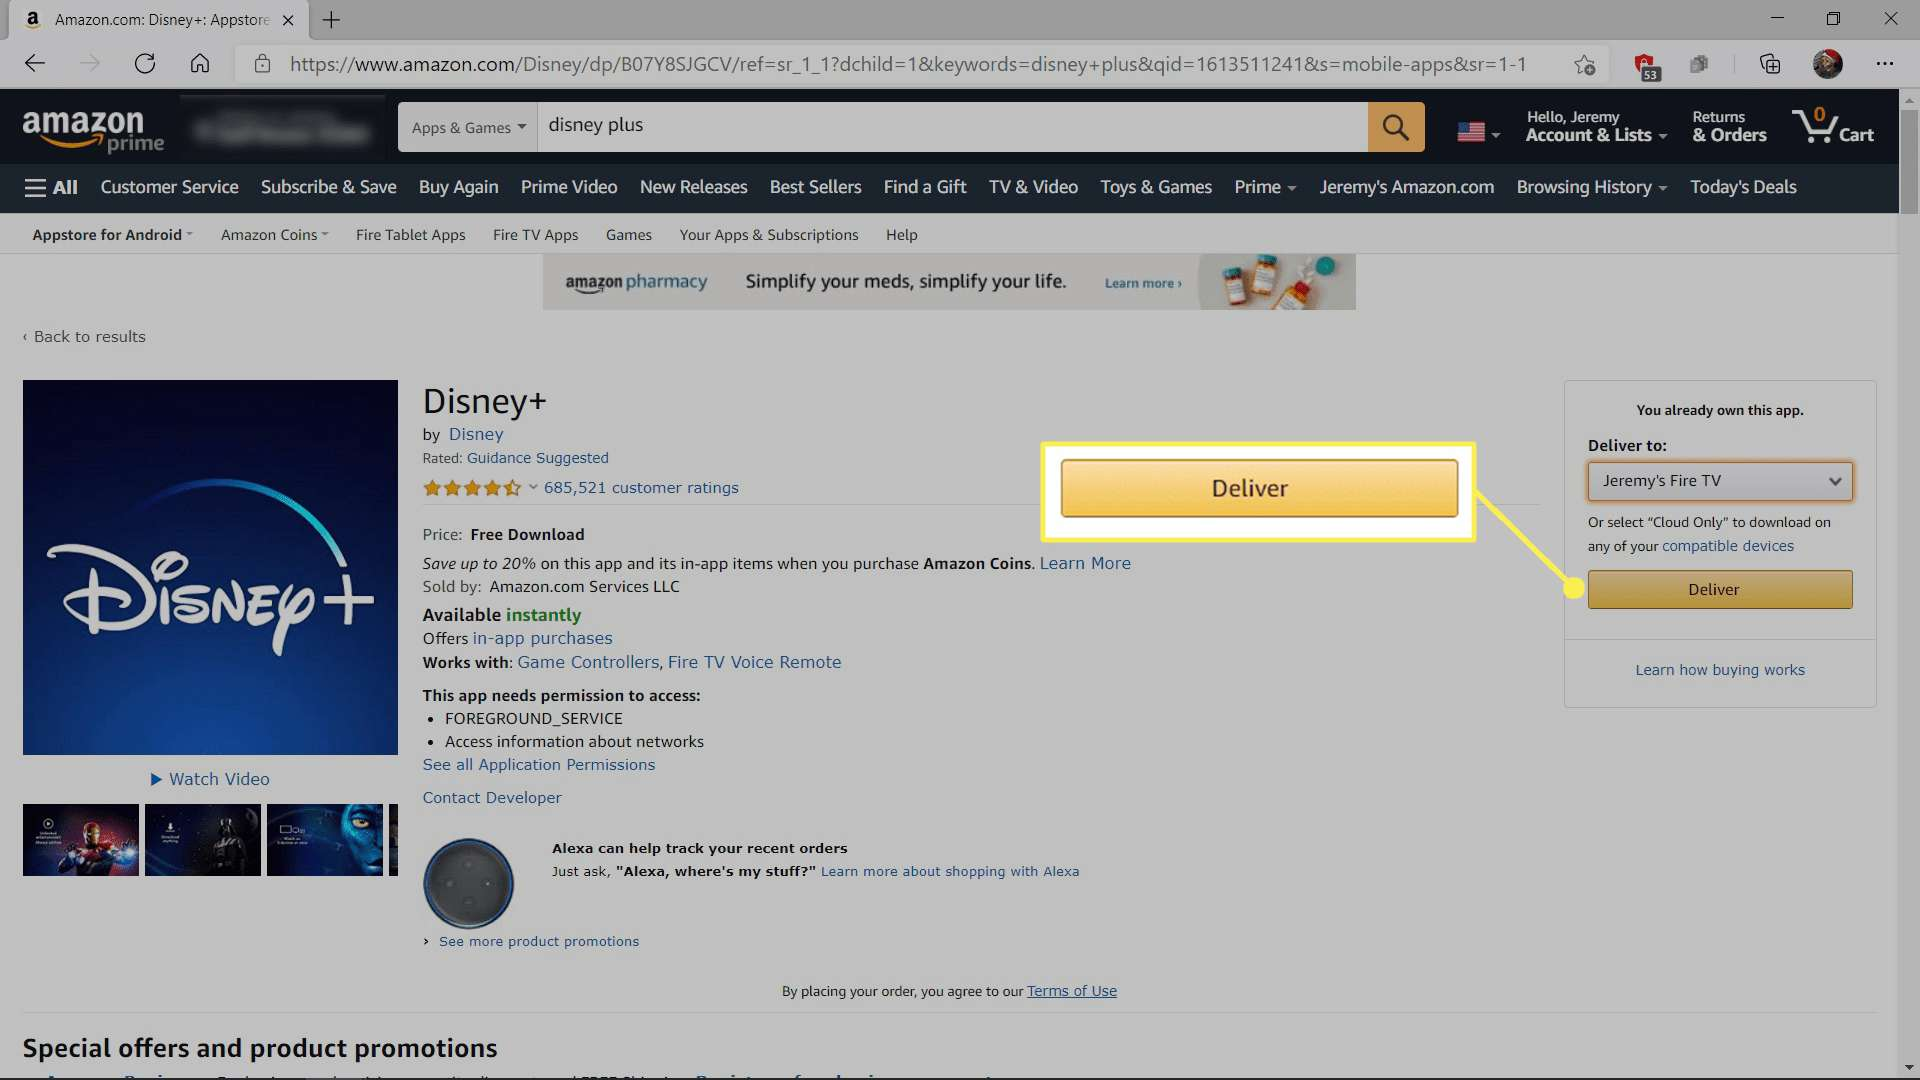 Getting Disney+ from Amazon for Fire TV with Deliver highlighted